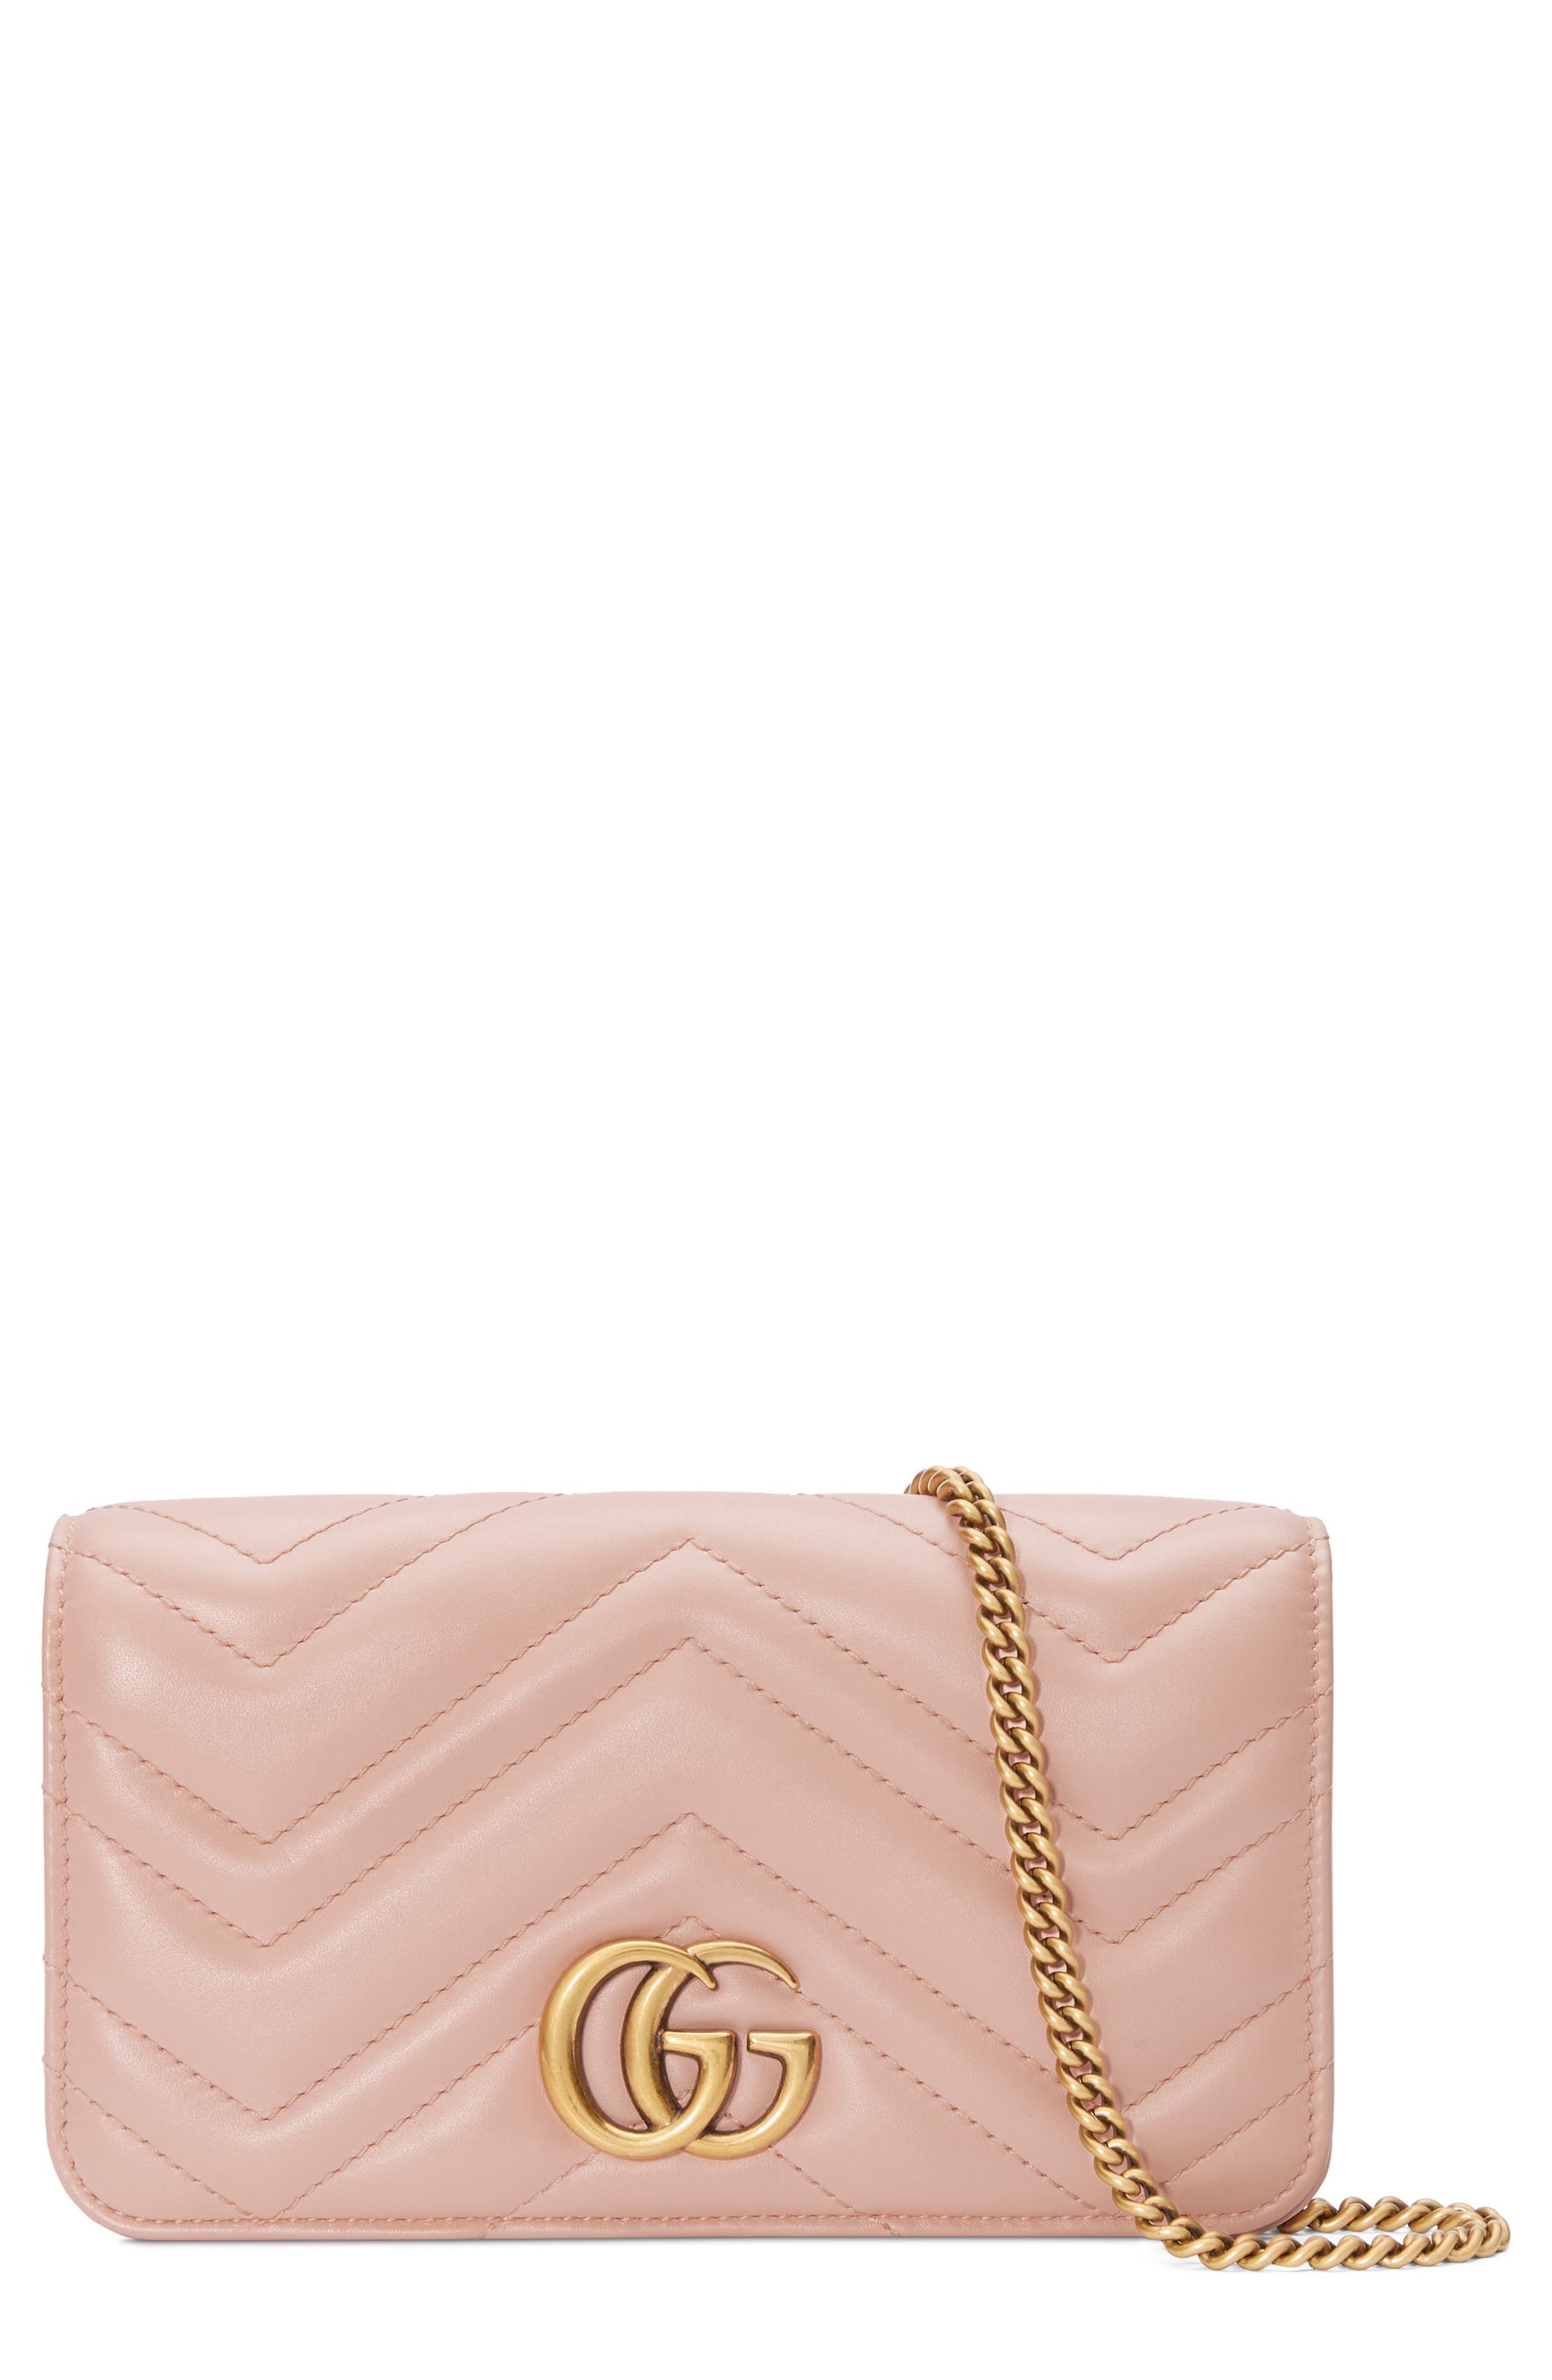 Marmont 2.0 Leather Shoulder Bag,                             Main thumbnail 1, color,                             PERFECT PINK